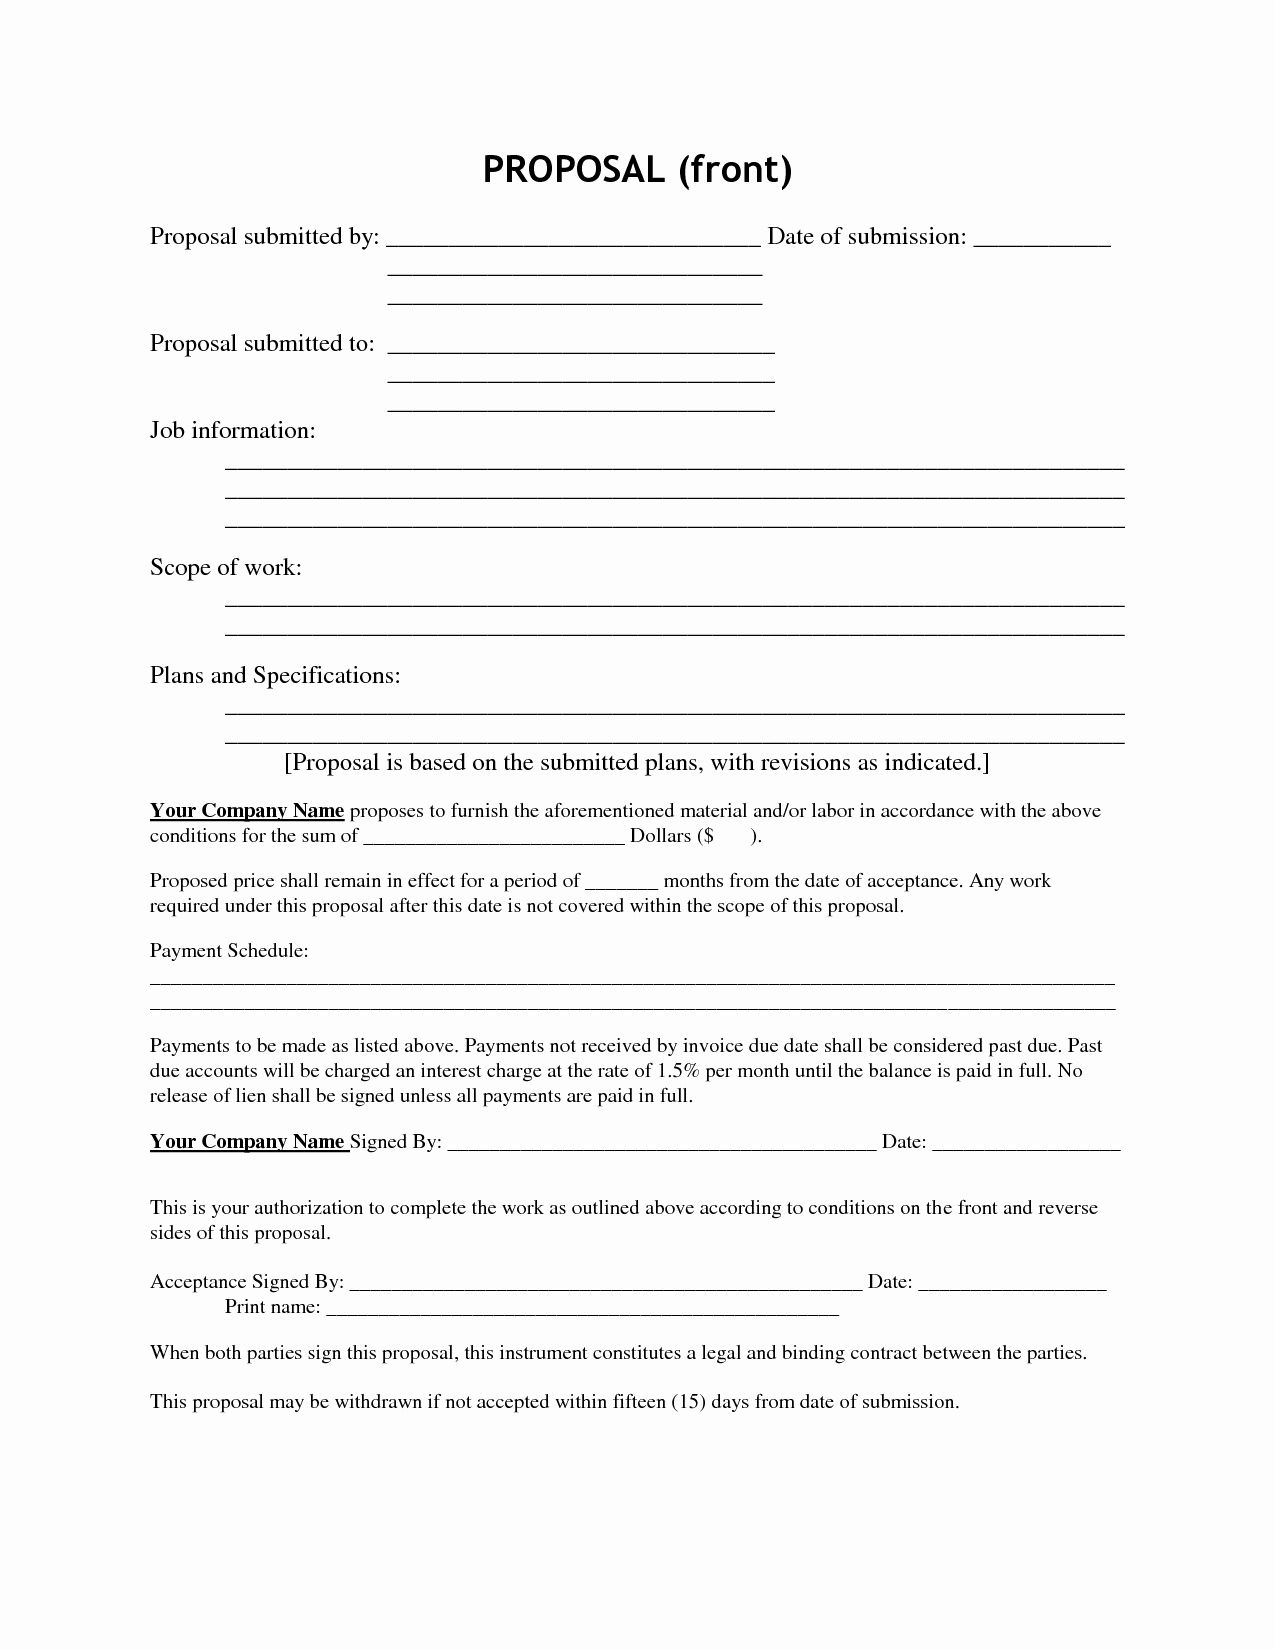 Construction Job Proposal Template Inspirational Best S Of Job Bid Template Free Job Proposal form